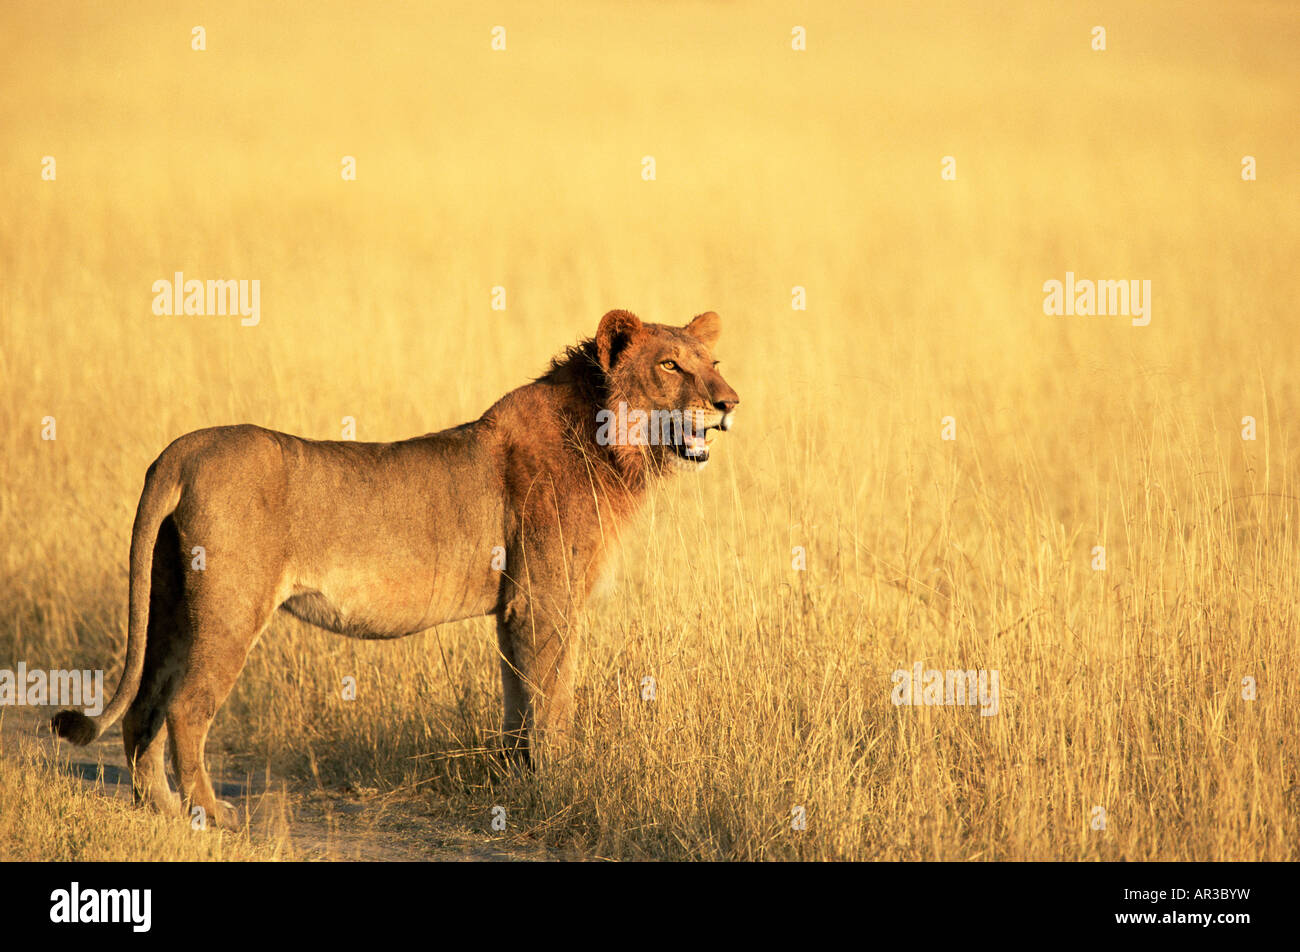 African lion - Stock Image